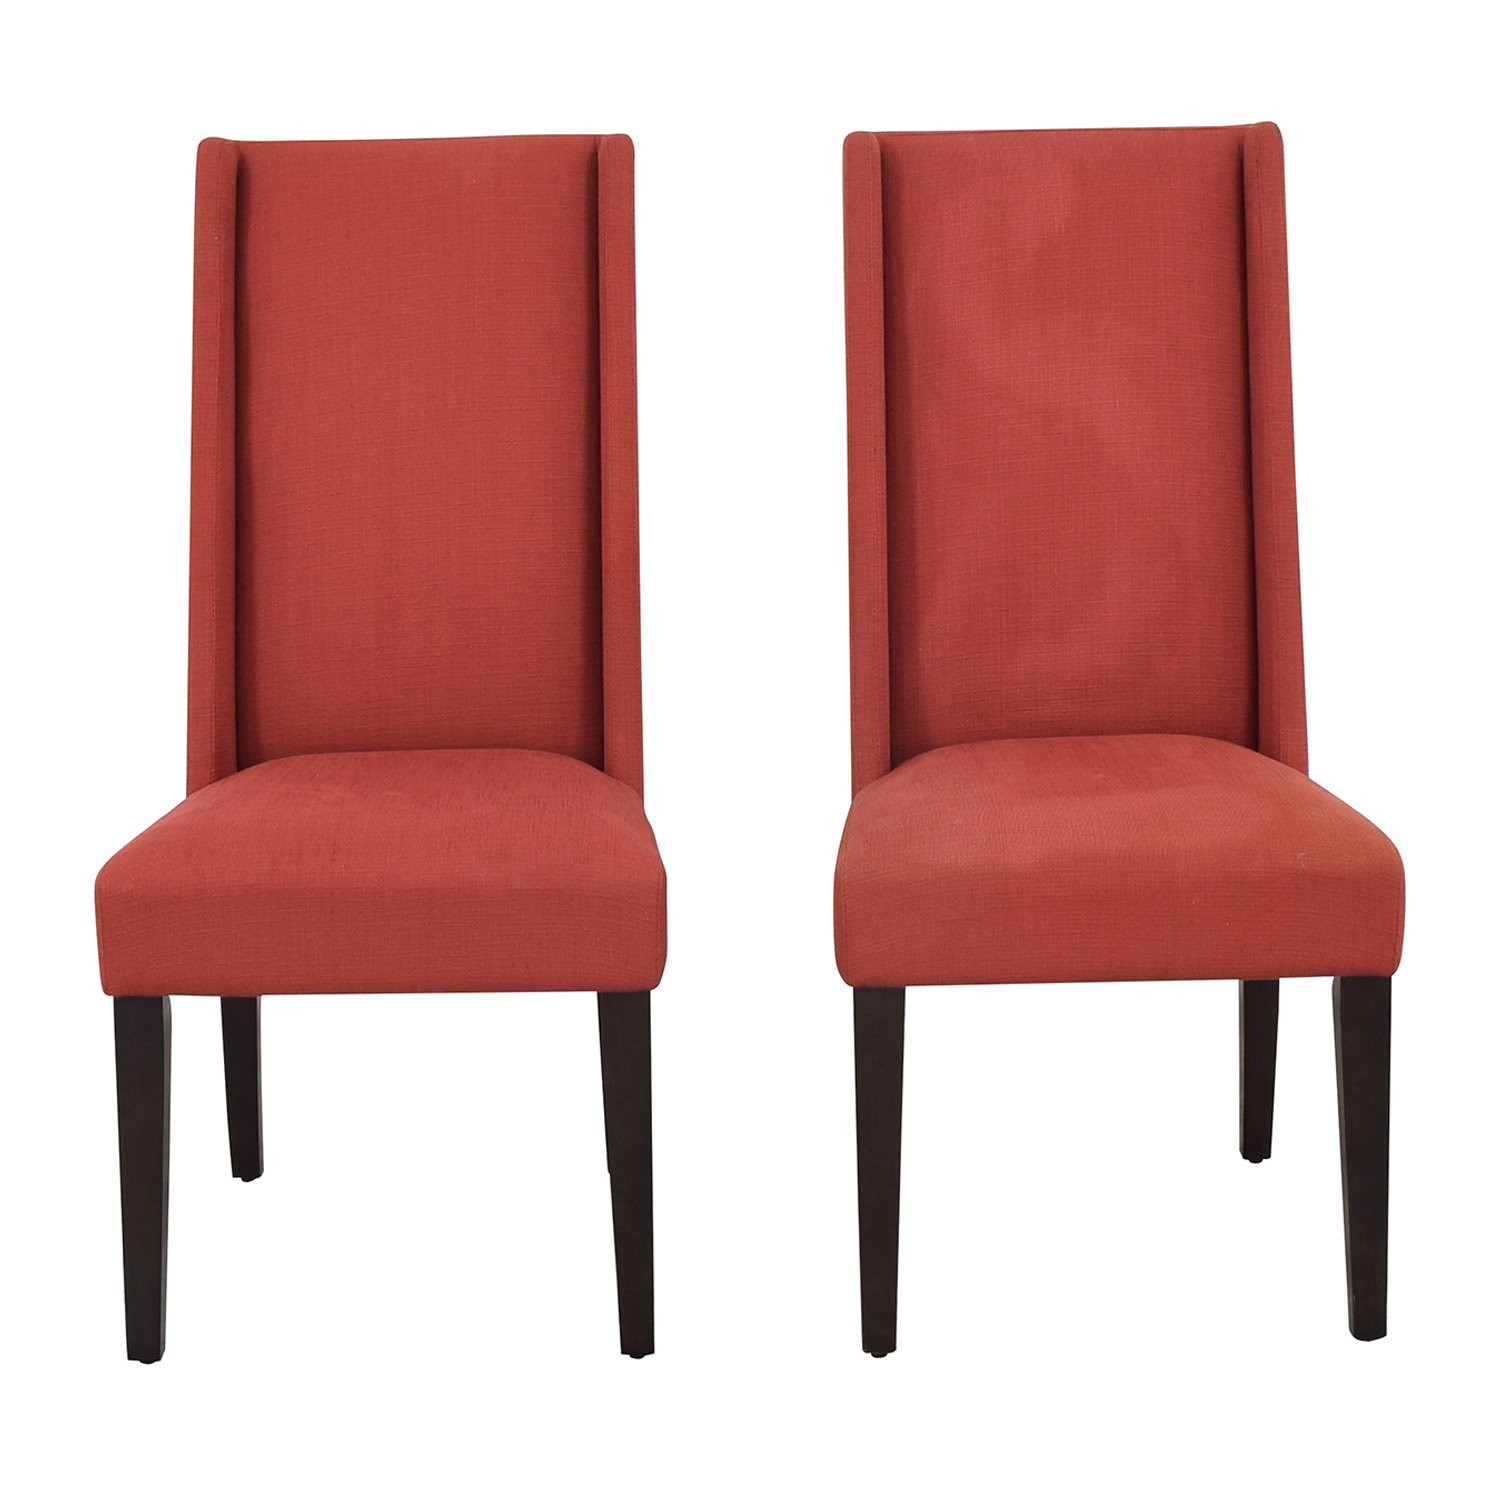 West Elm West Elm Willoughby Dining Chairs for sale